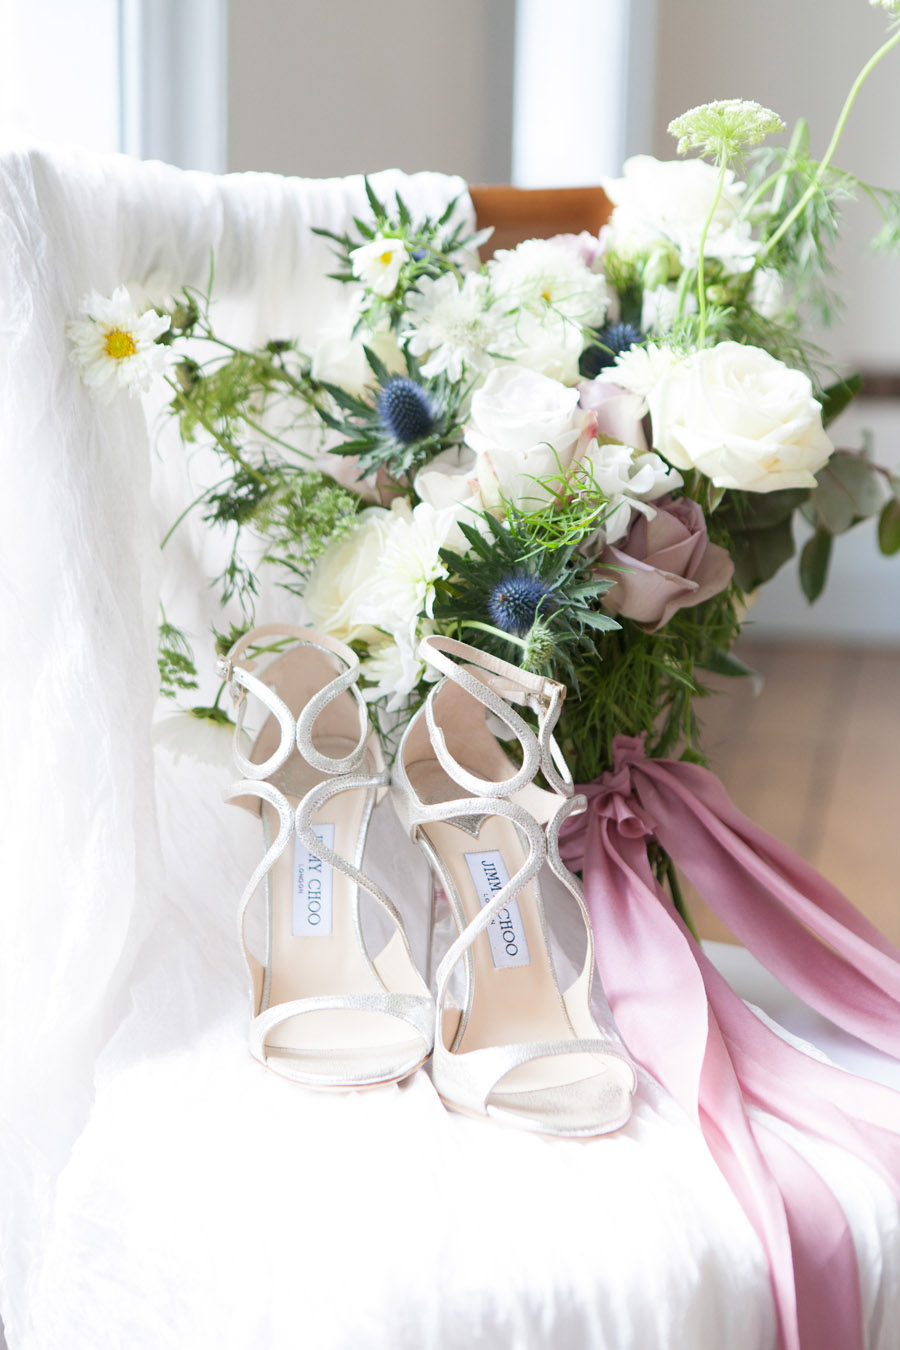 Elegant and timeless wedding look for 2019 brides and grooms, image credit Amanda Karen Photography (32)